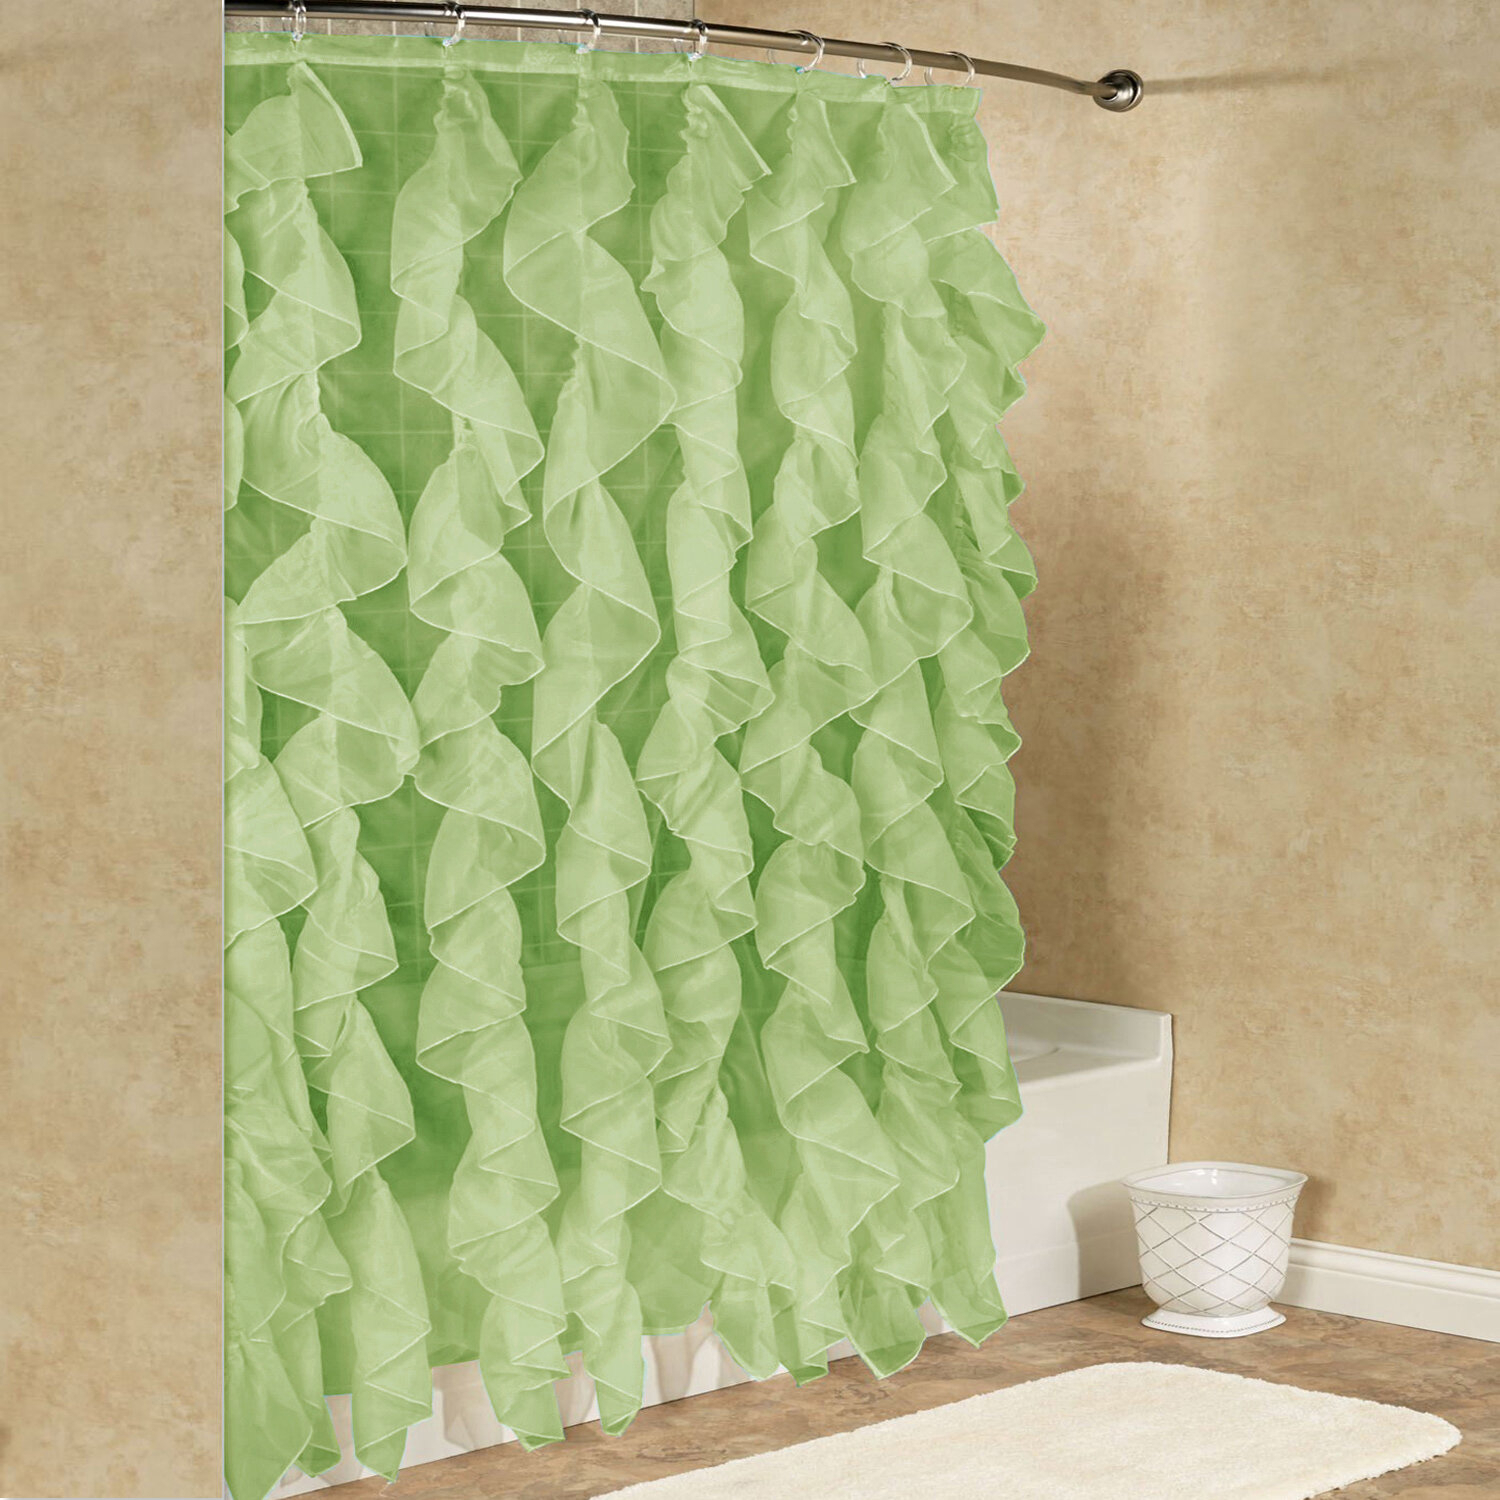 Fuhrman Chic Sheer Voile Vertical Waterfall Ruffled Single Hooks Shower Curtain For Chic Sheer Voile Vertical Ruffled Window Curtain Tiers (View 13 of 20)